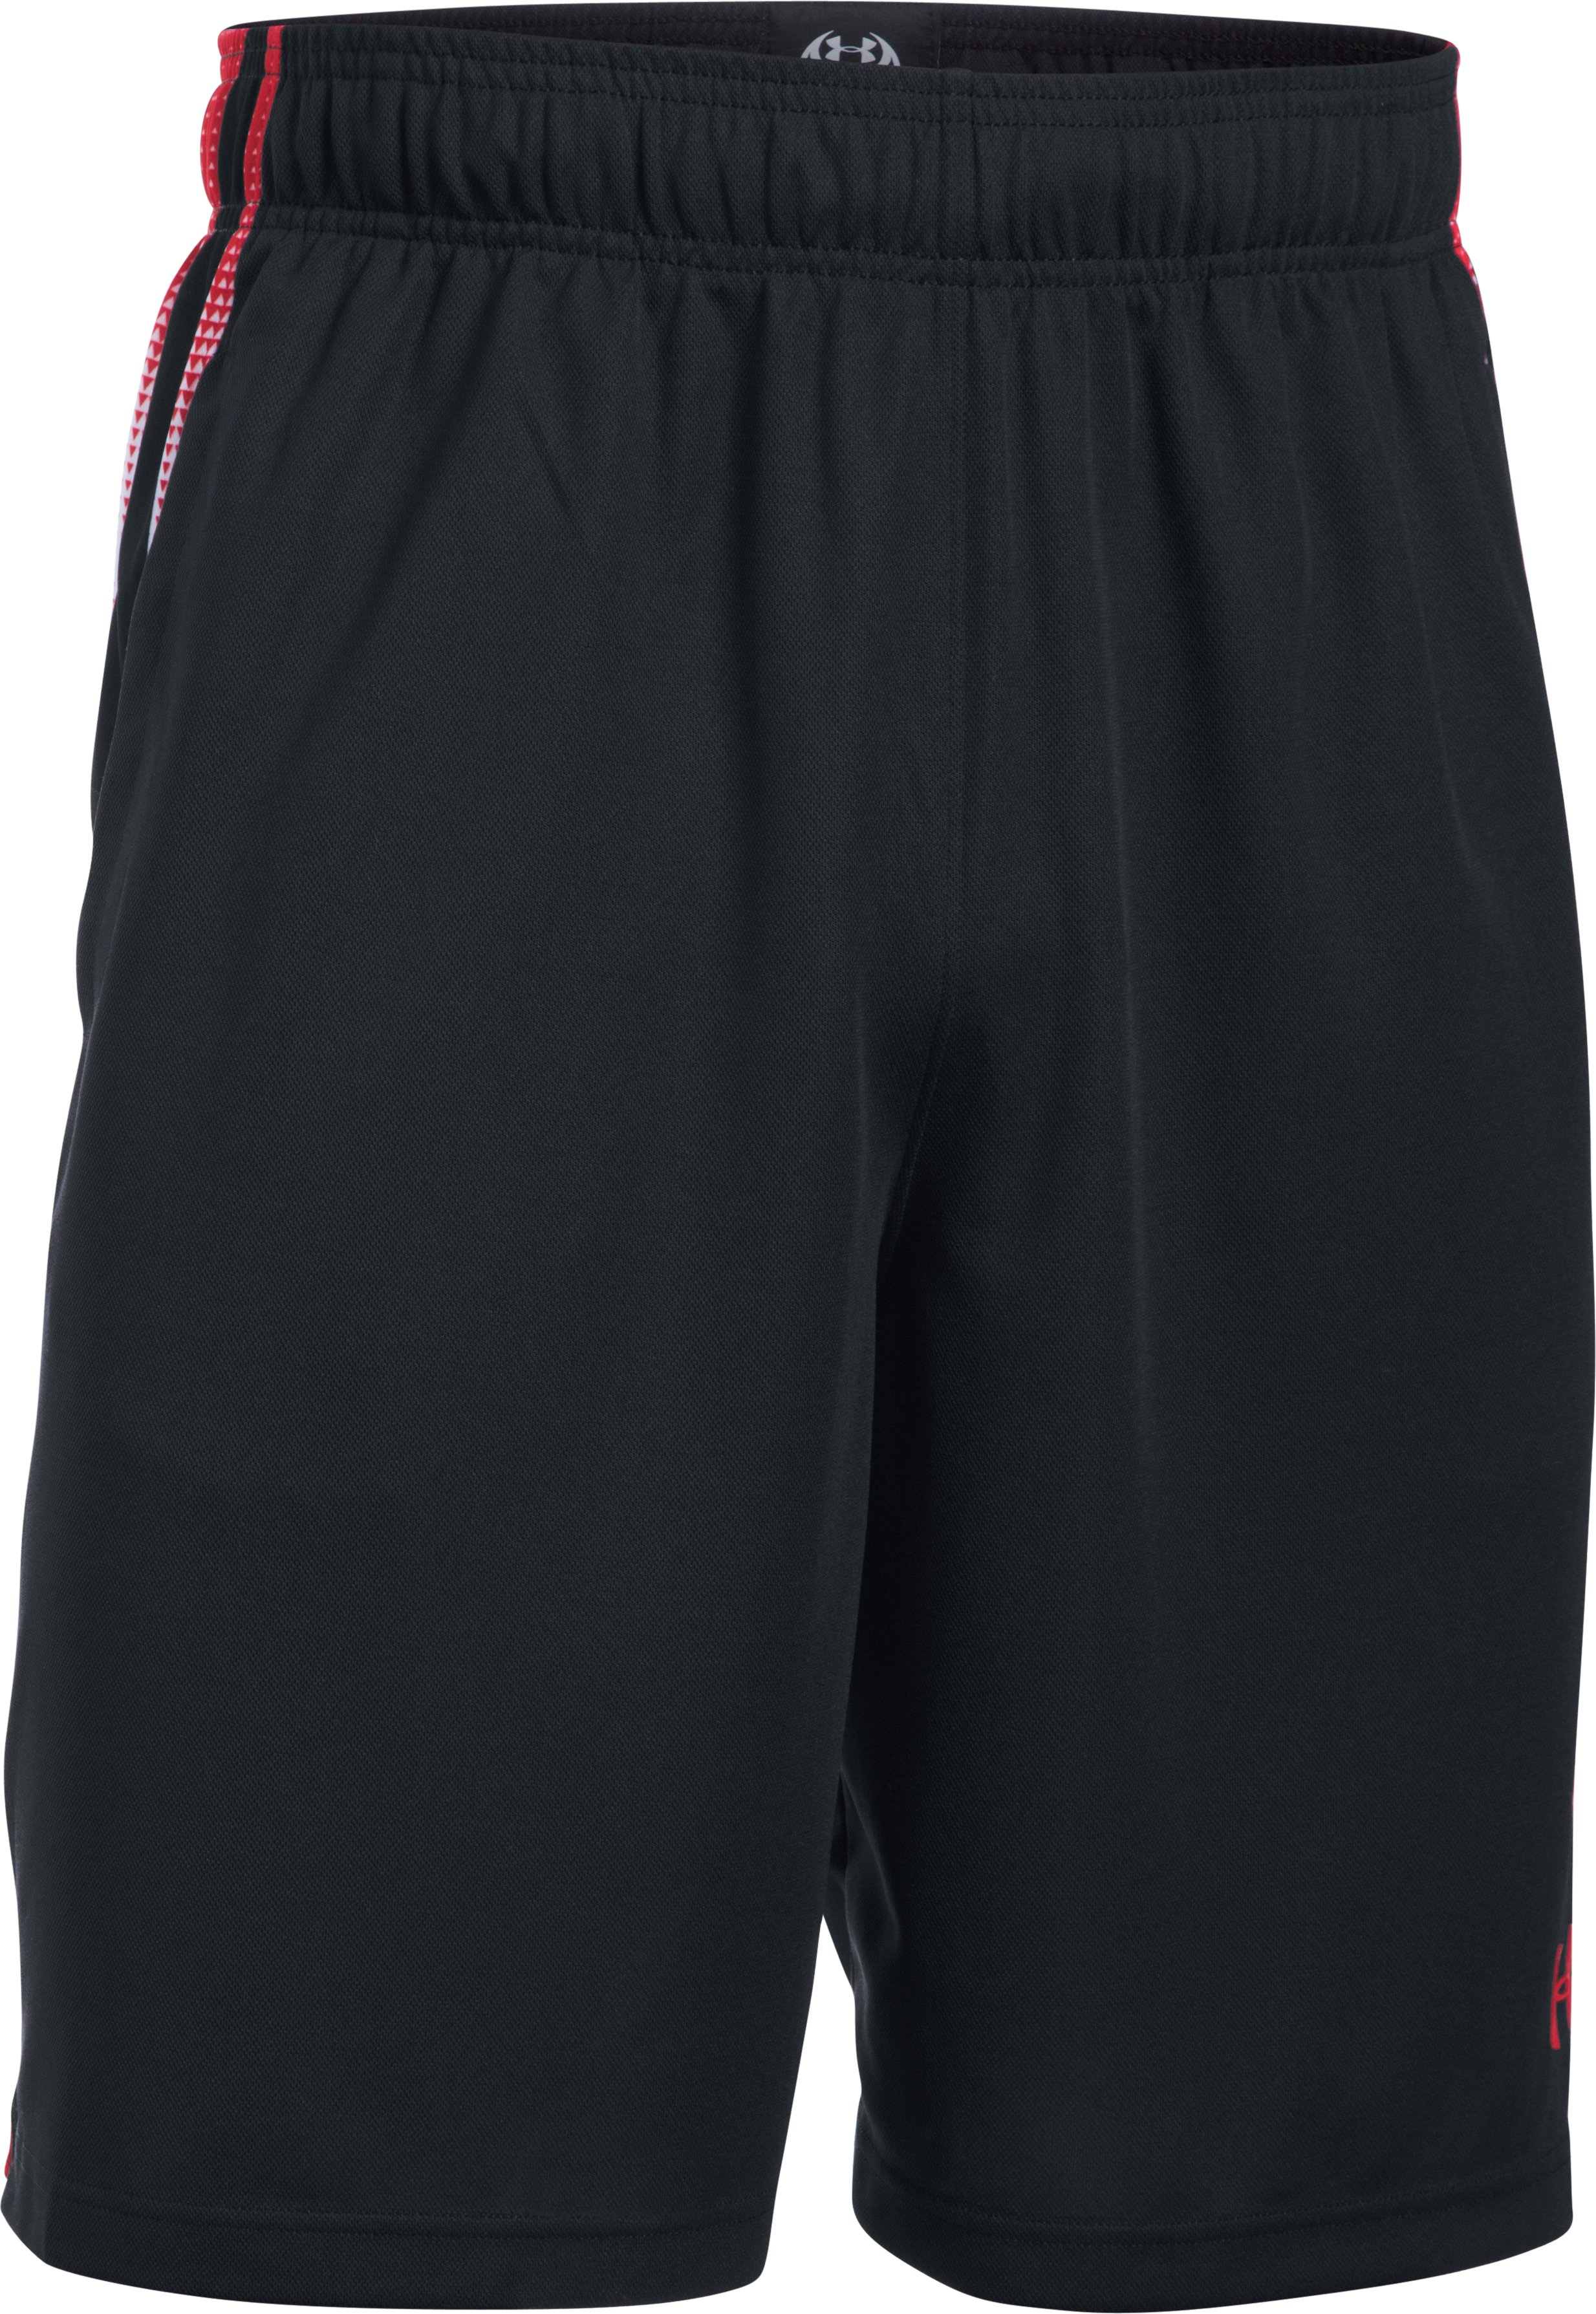 "Men's UA Select 9"" Shorts, Black ,"